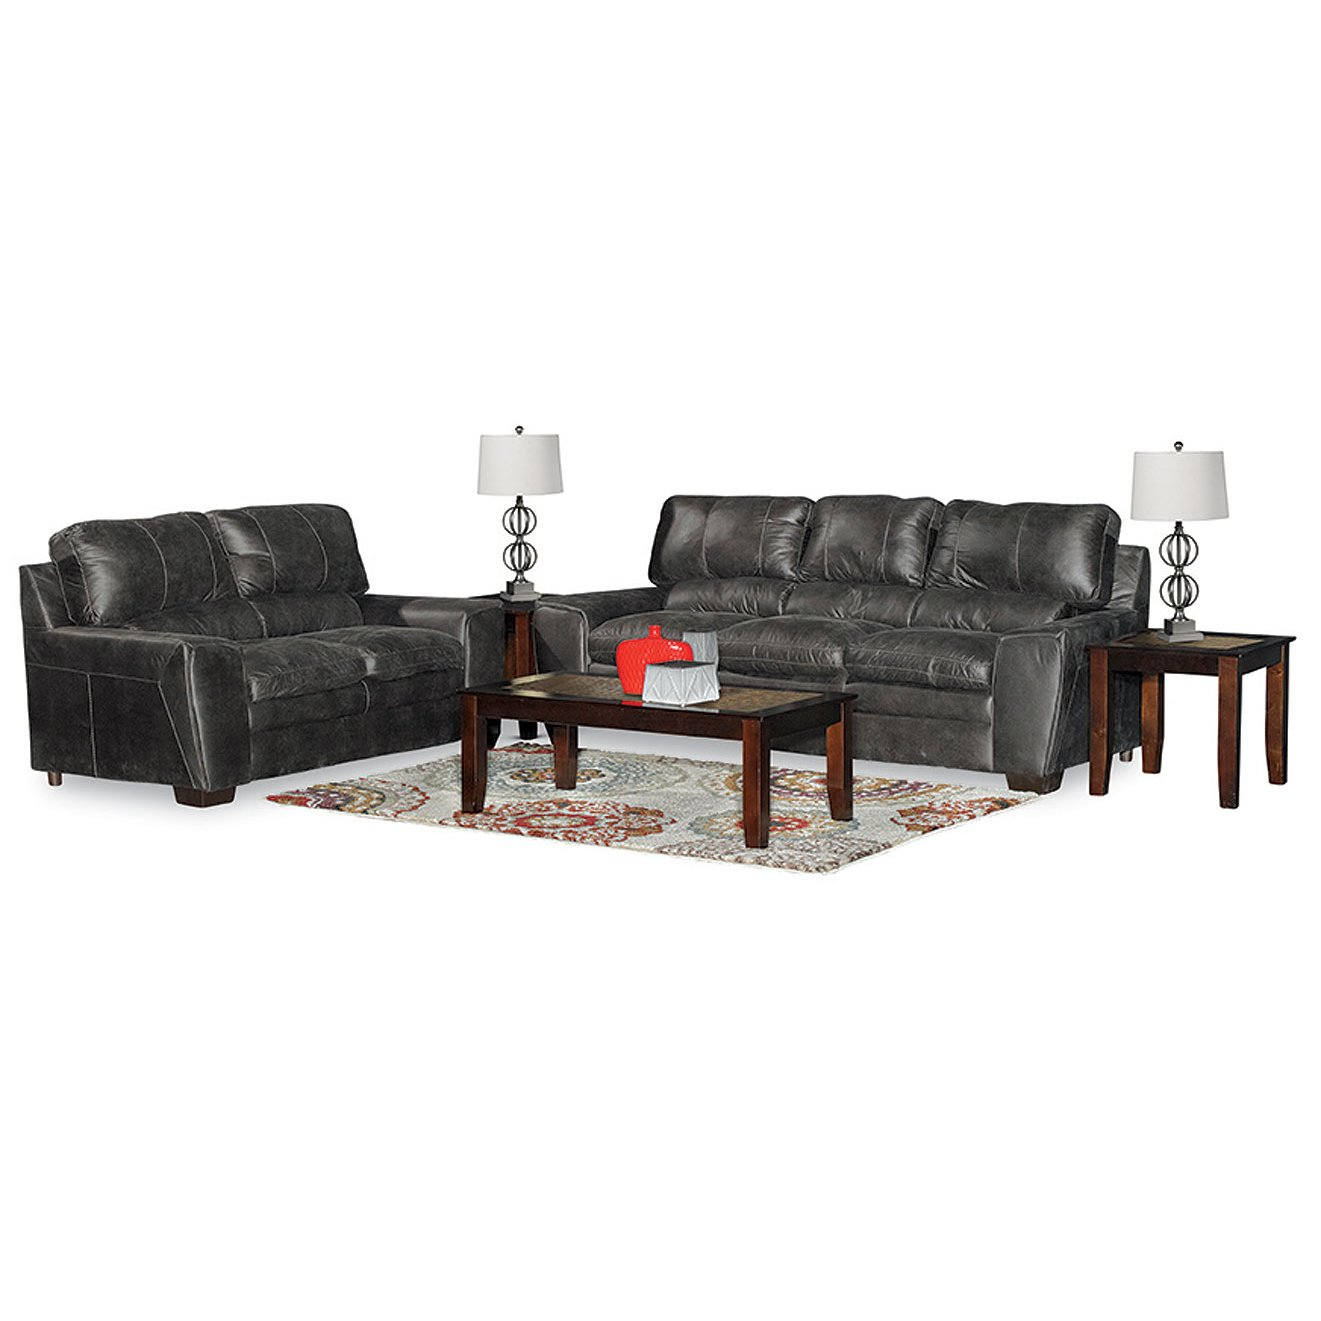 Casual Contemporary Graphite Gray 5 Piece Room Group   Caruso   RC Willey  Furniture Store